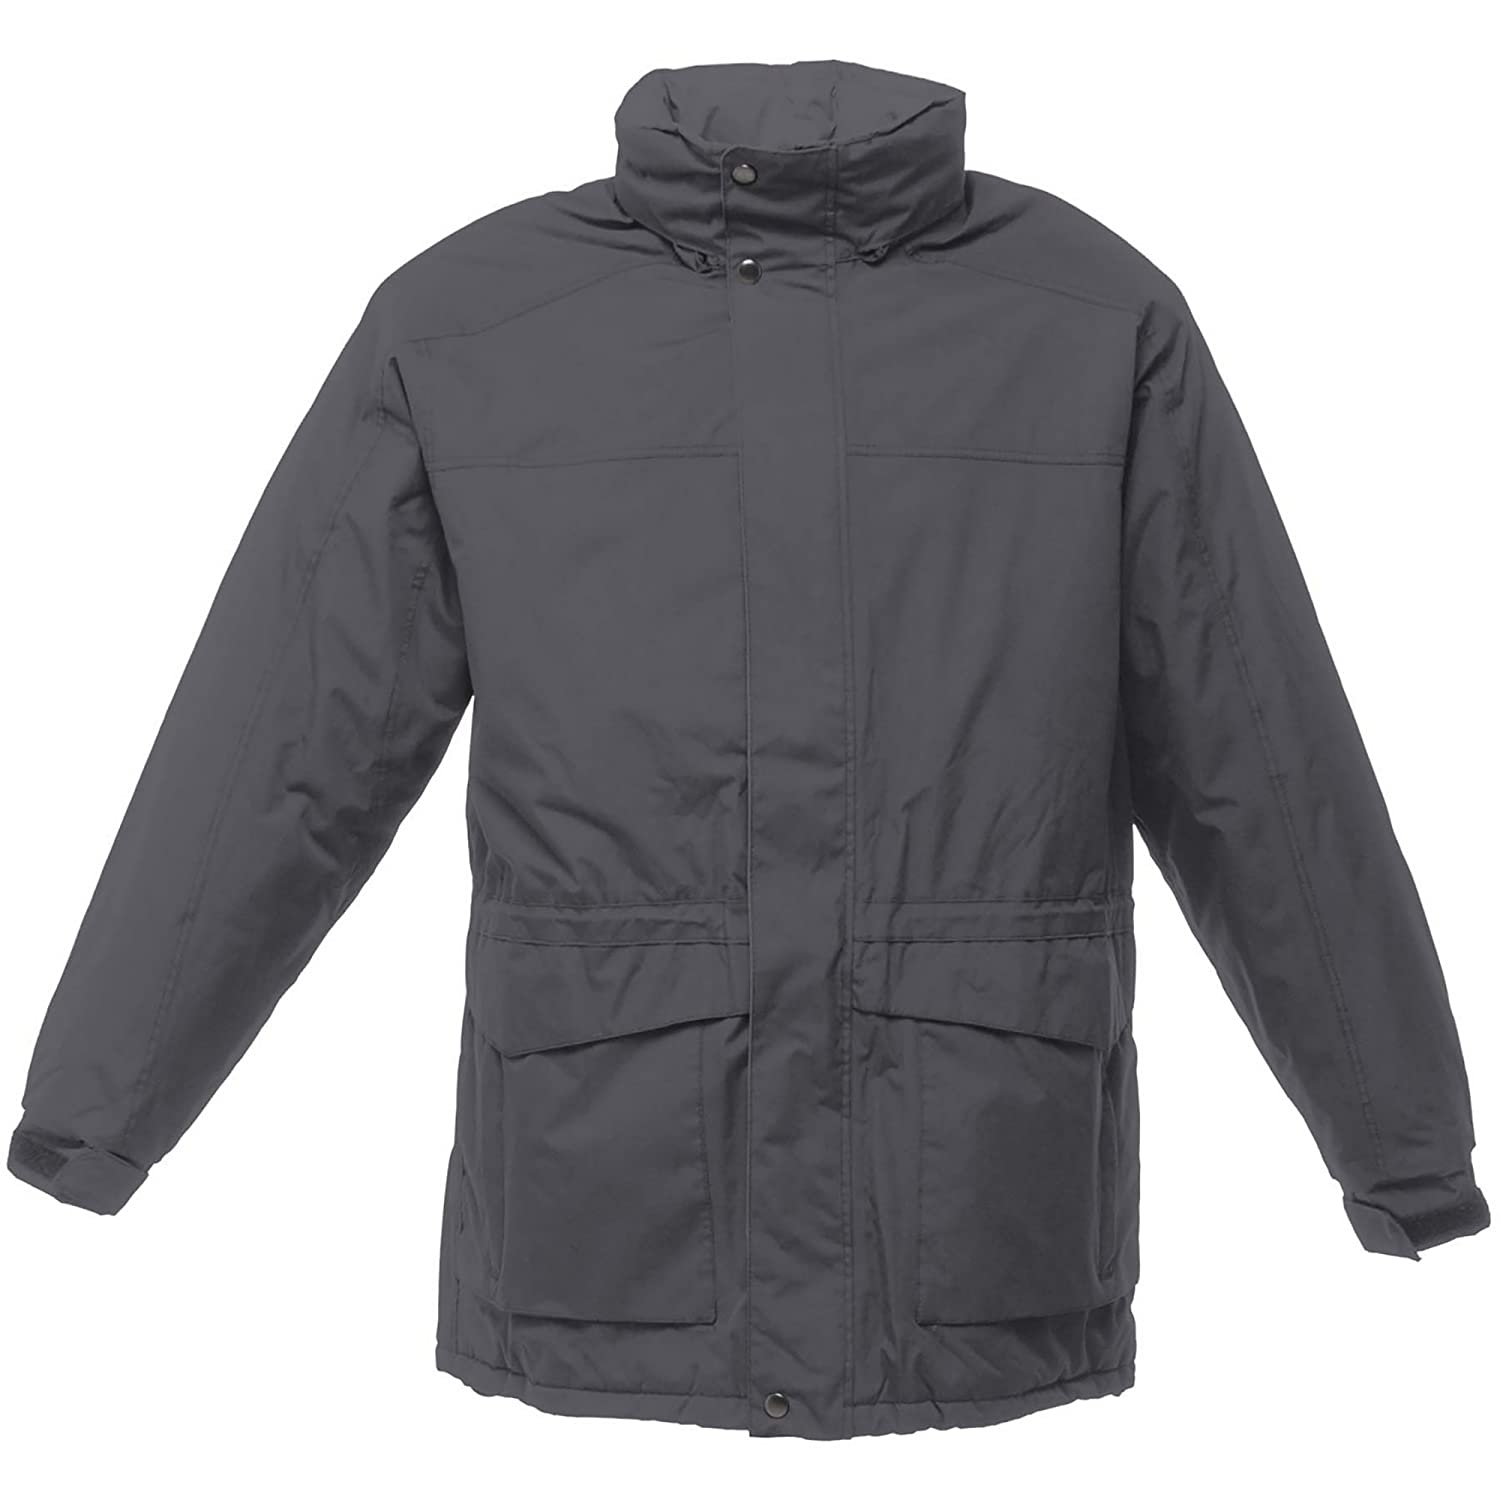 Darby ll Jacket (3 colours)